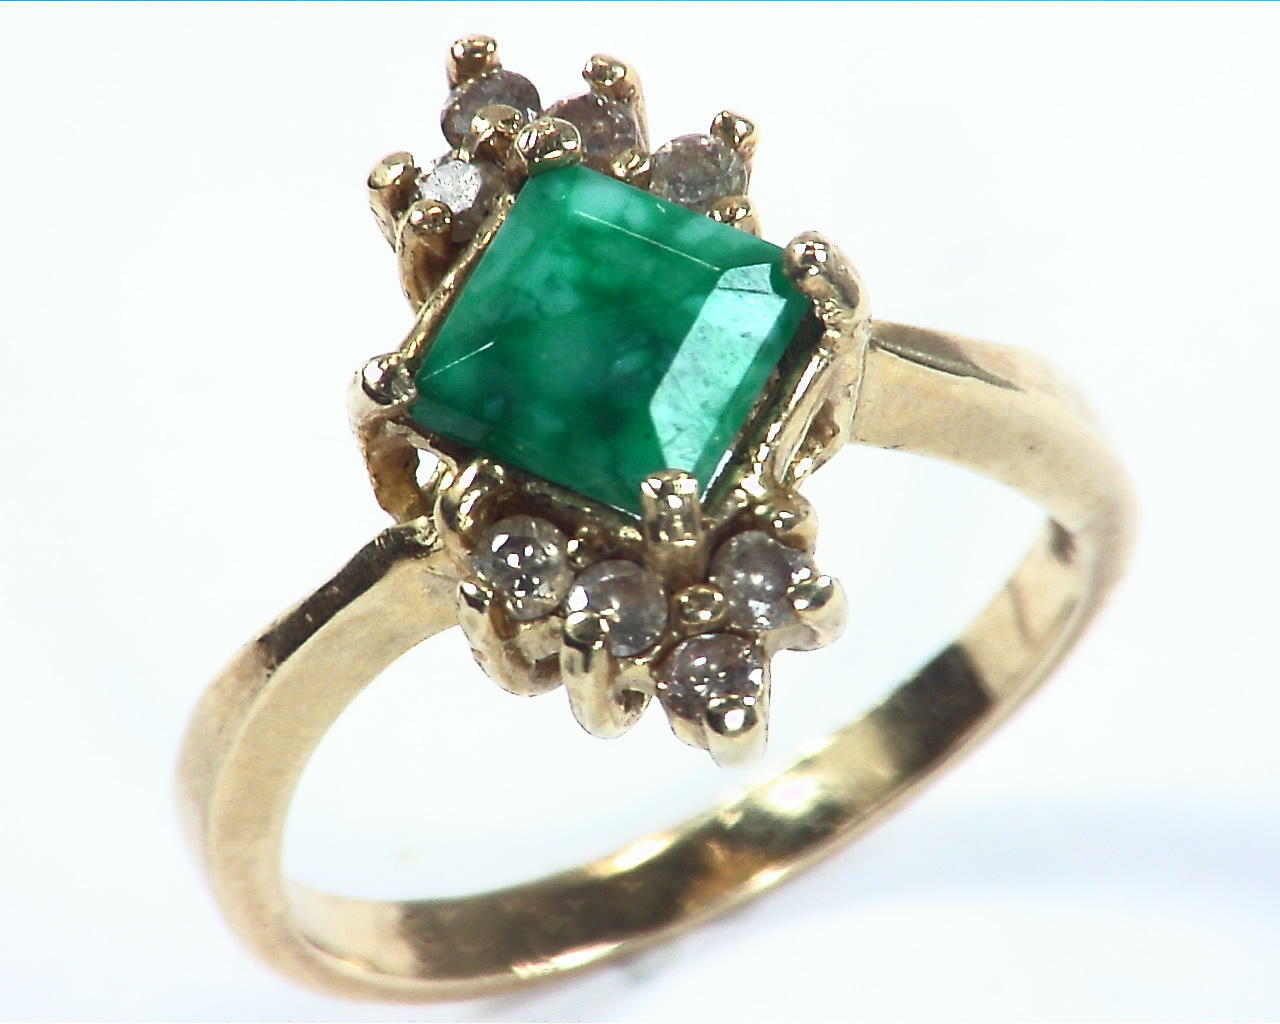 Emerald Natural Genuine Gemstone Gold And Diamond Ring RFK,158 5